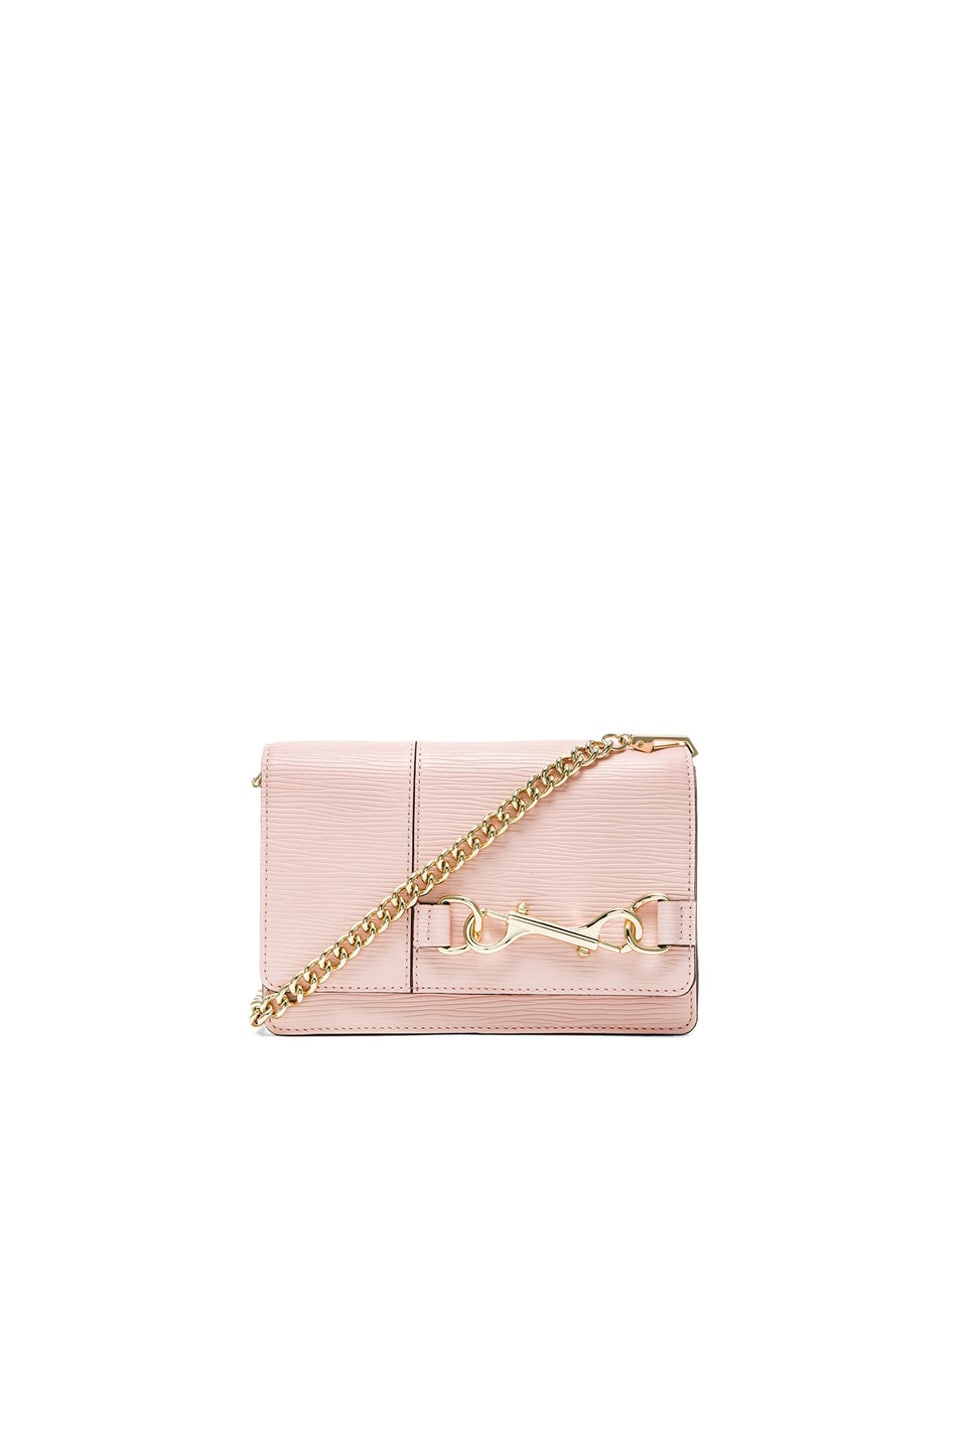 Rebecca Minkoff Bedford Crossbody in Quartz